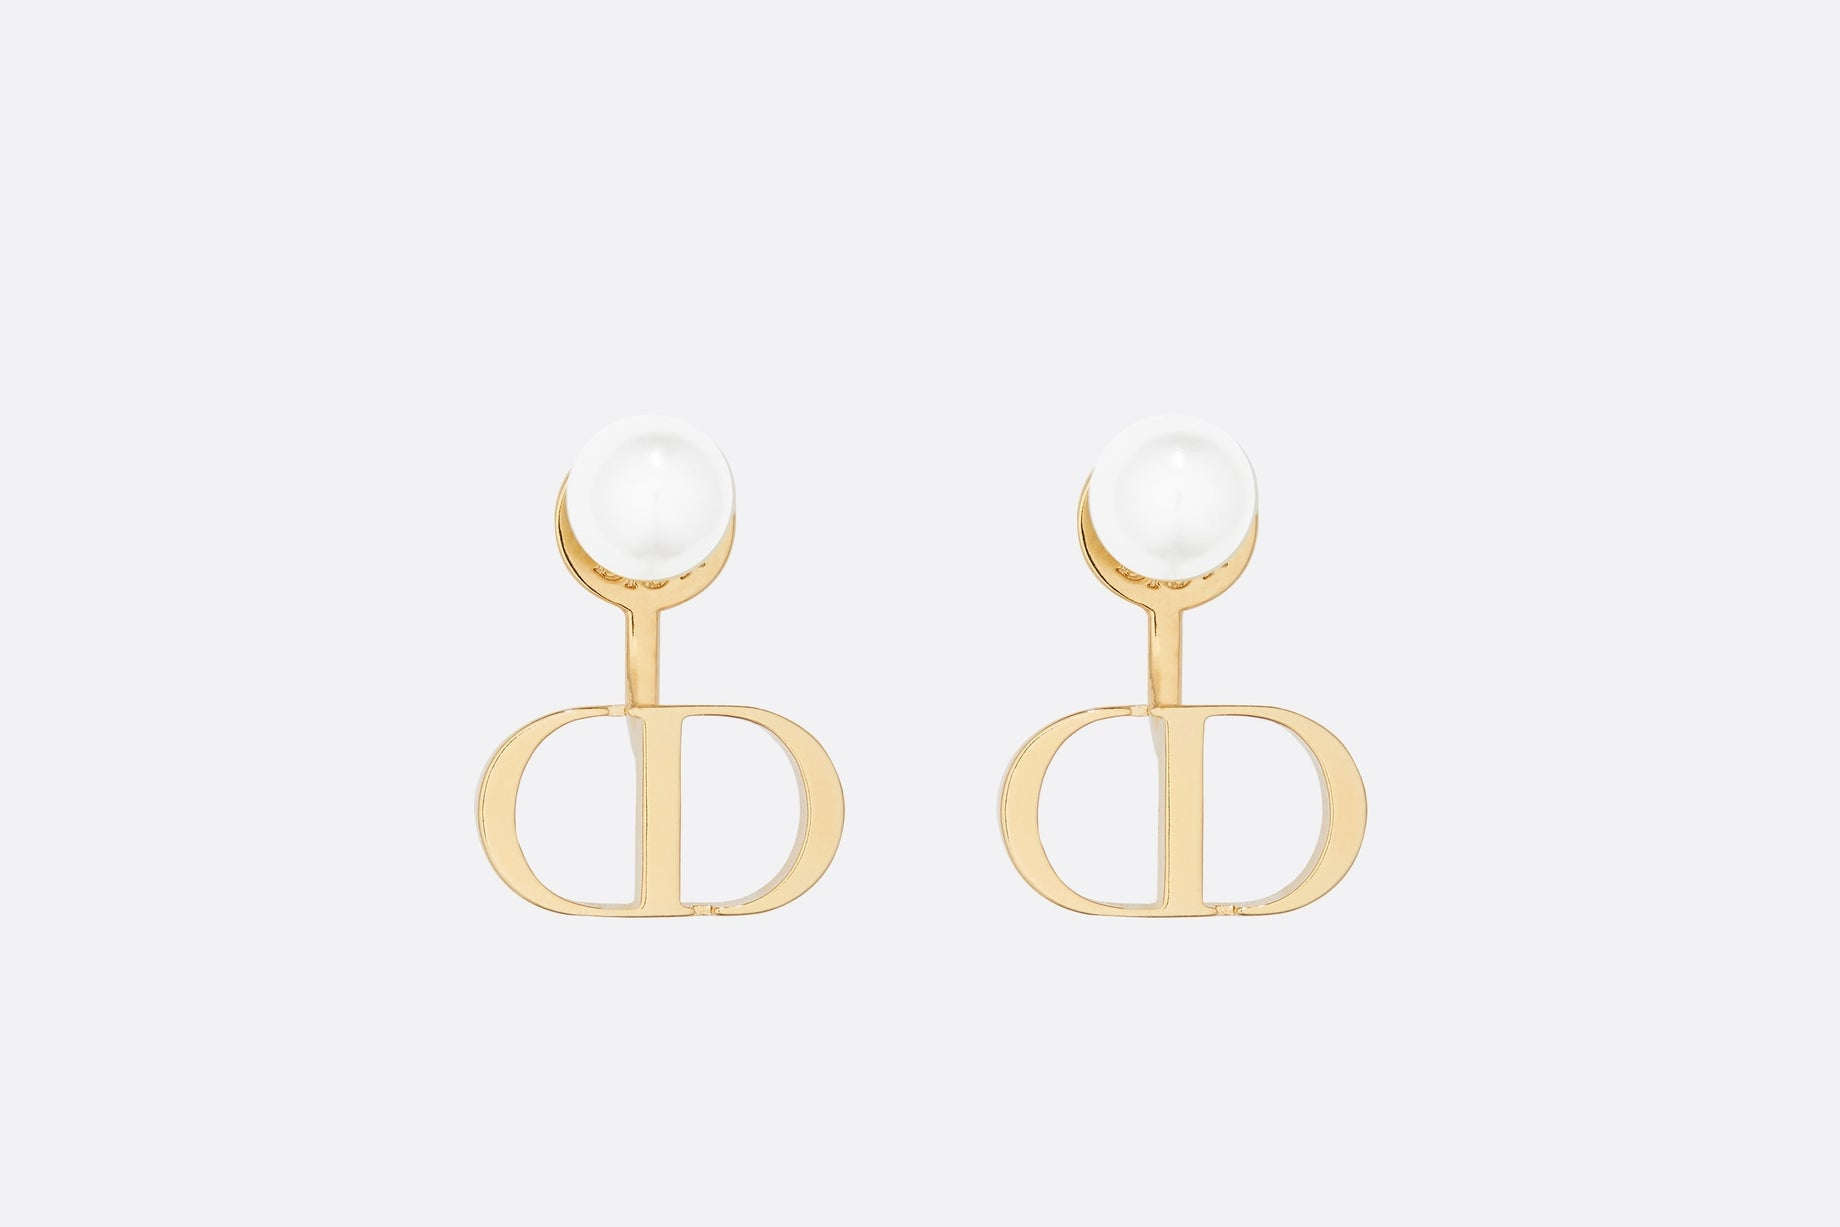 Petit CD Earrings • Gold-Finish Metal and White Resin Pearls